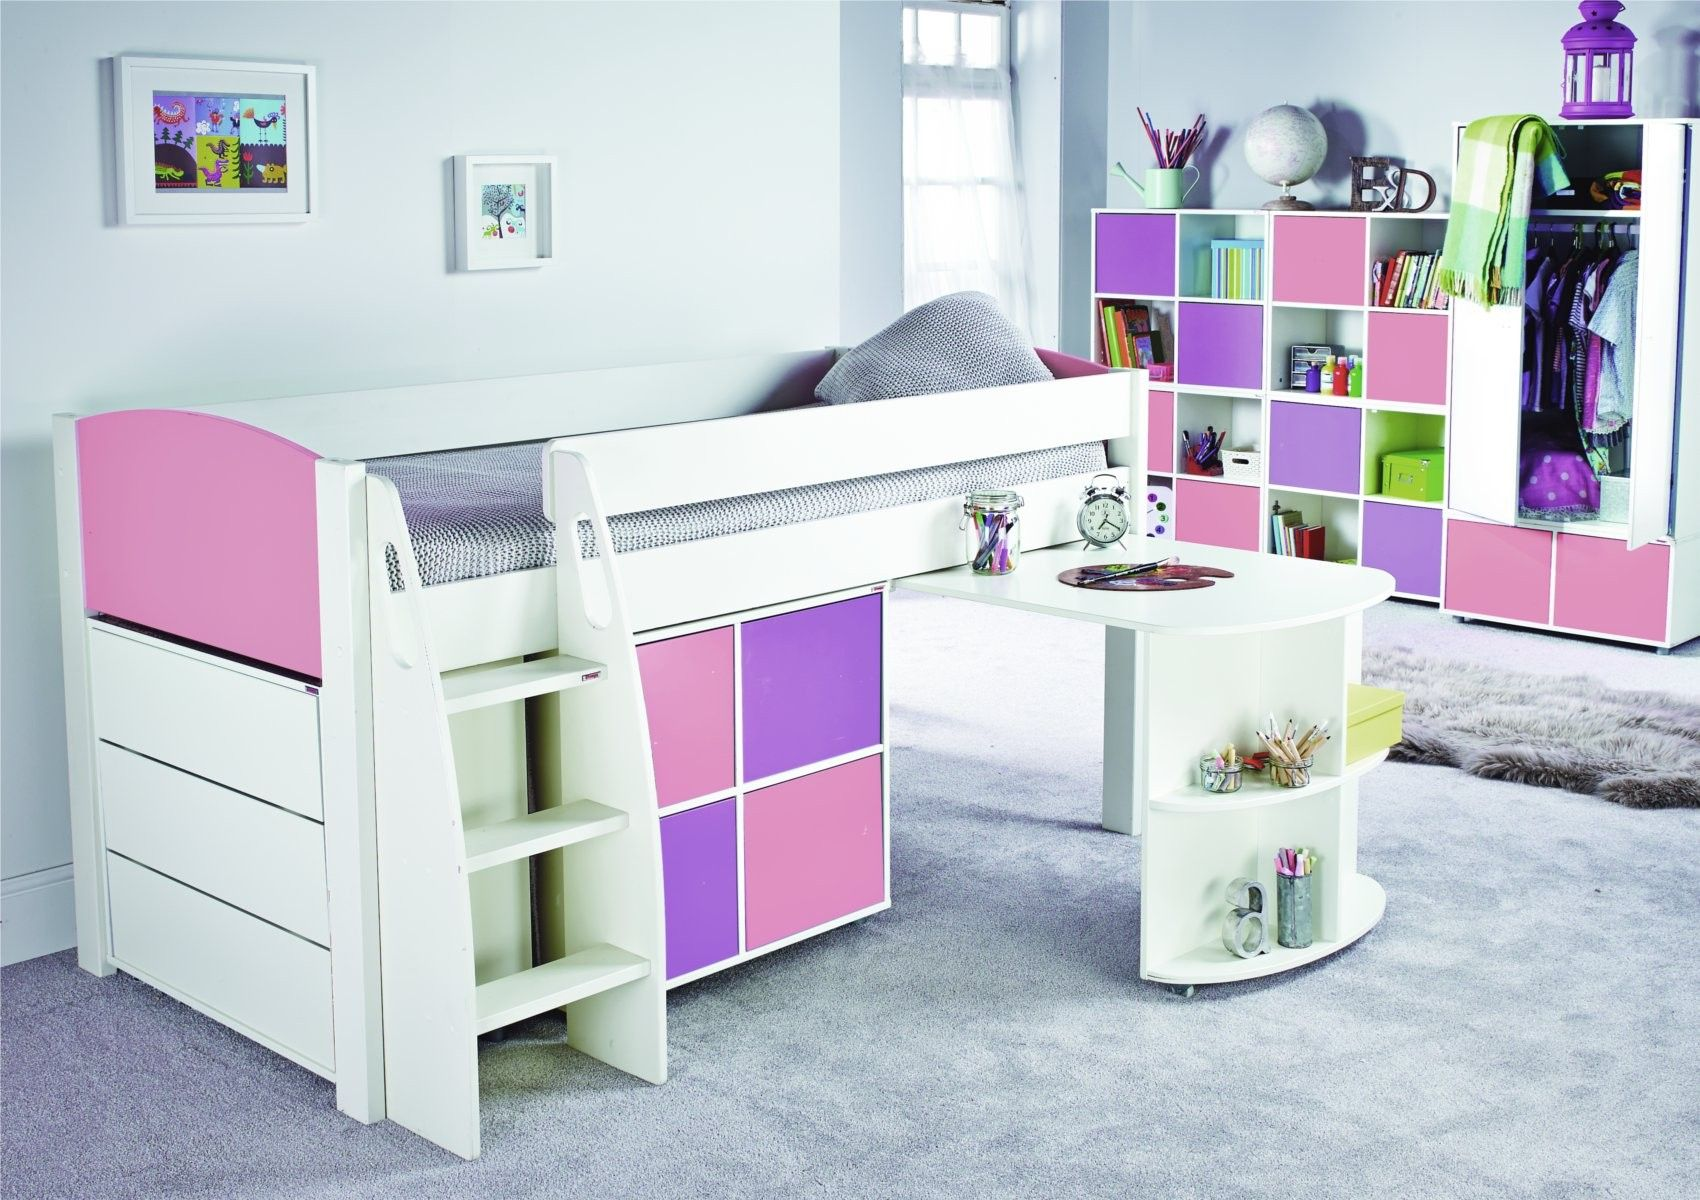 The Midsleeper range is ideal for children between ages 6